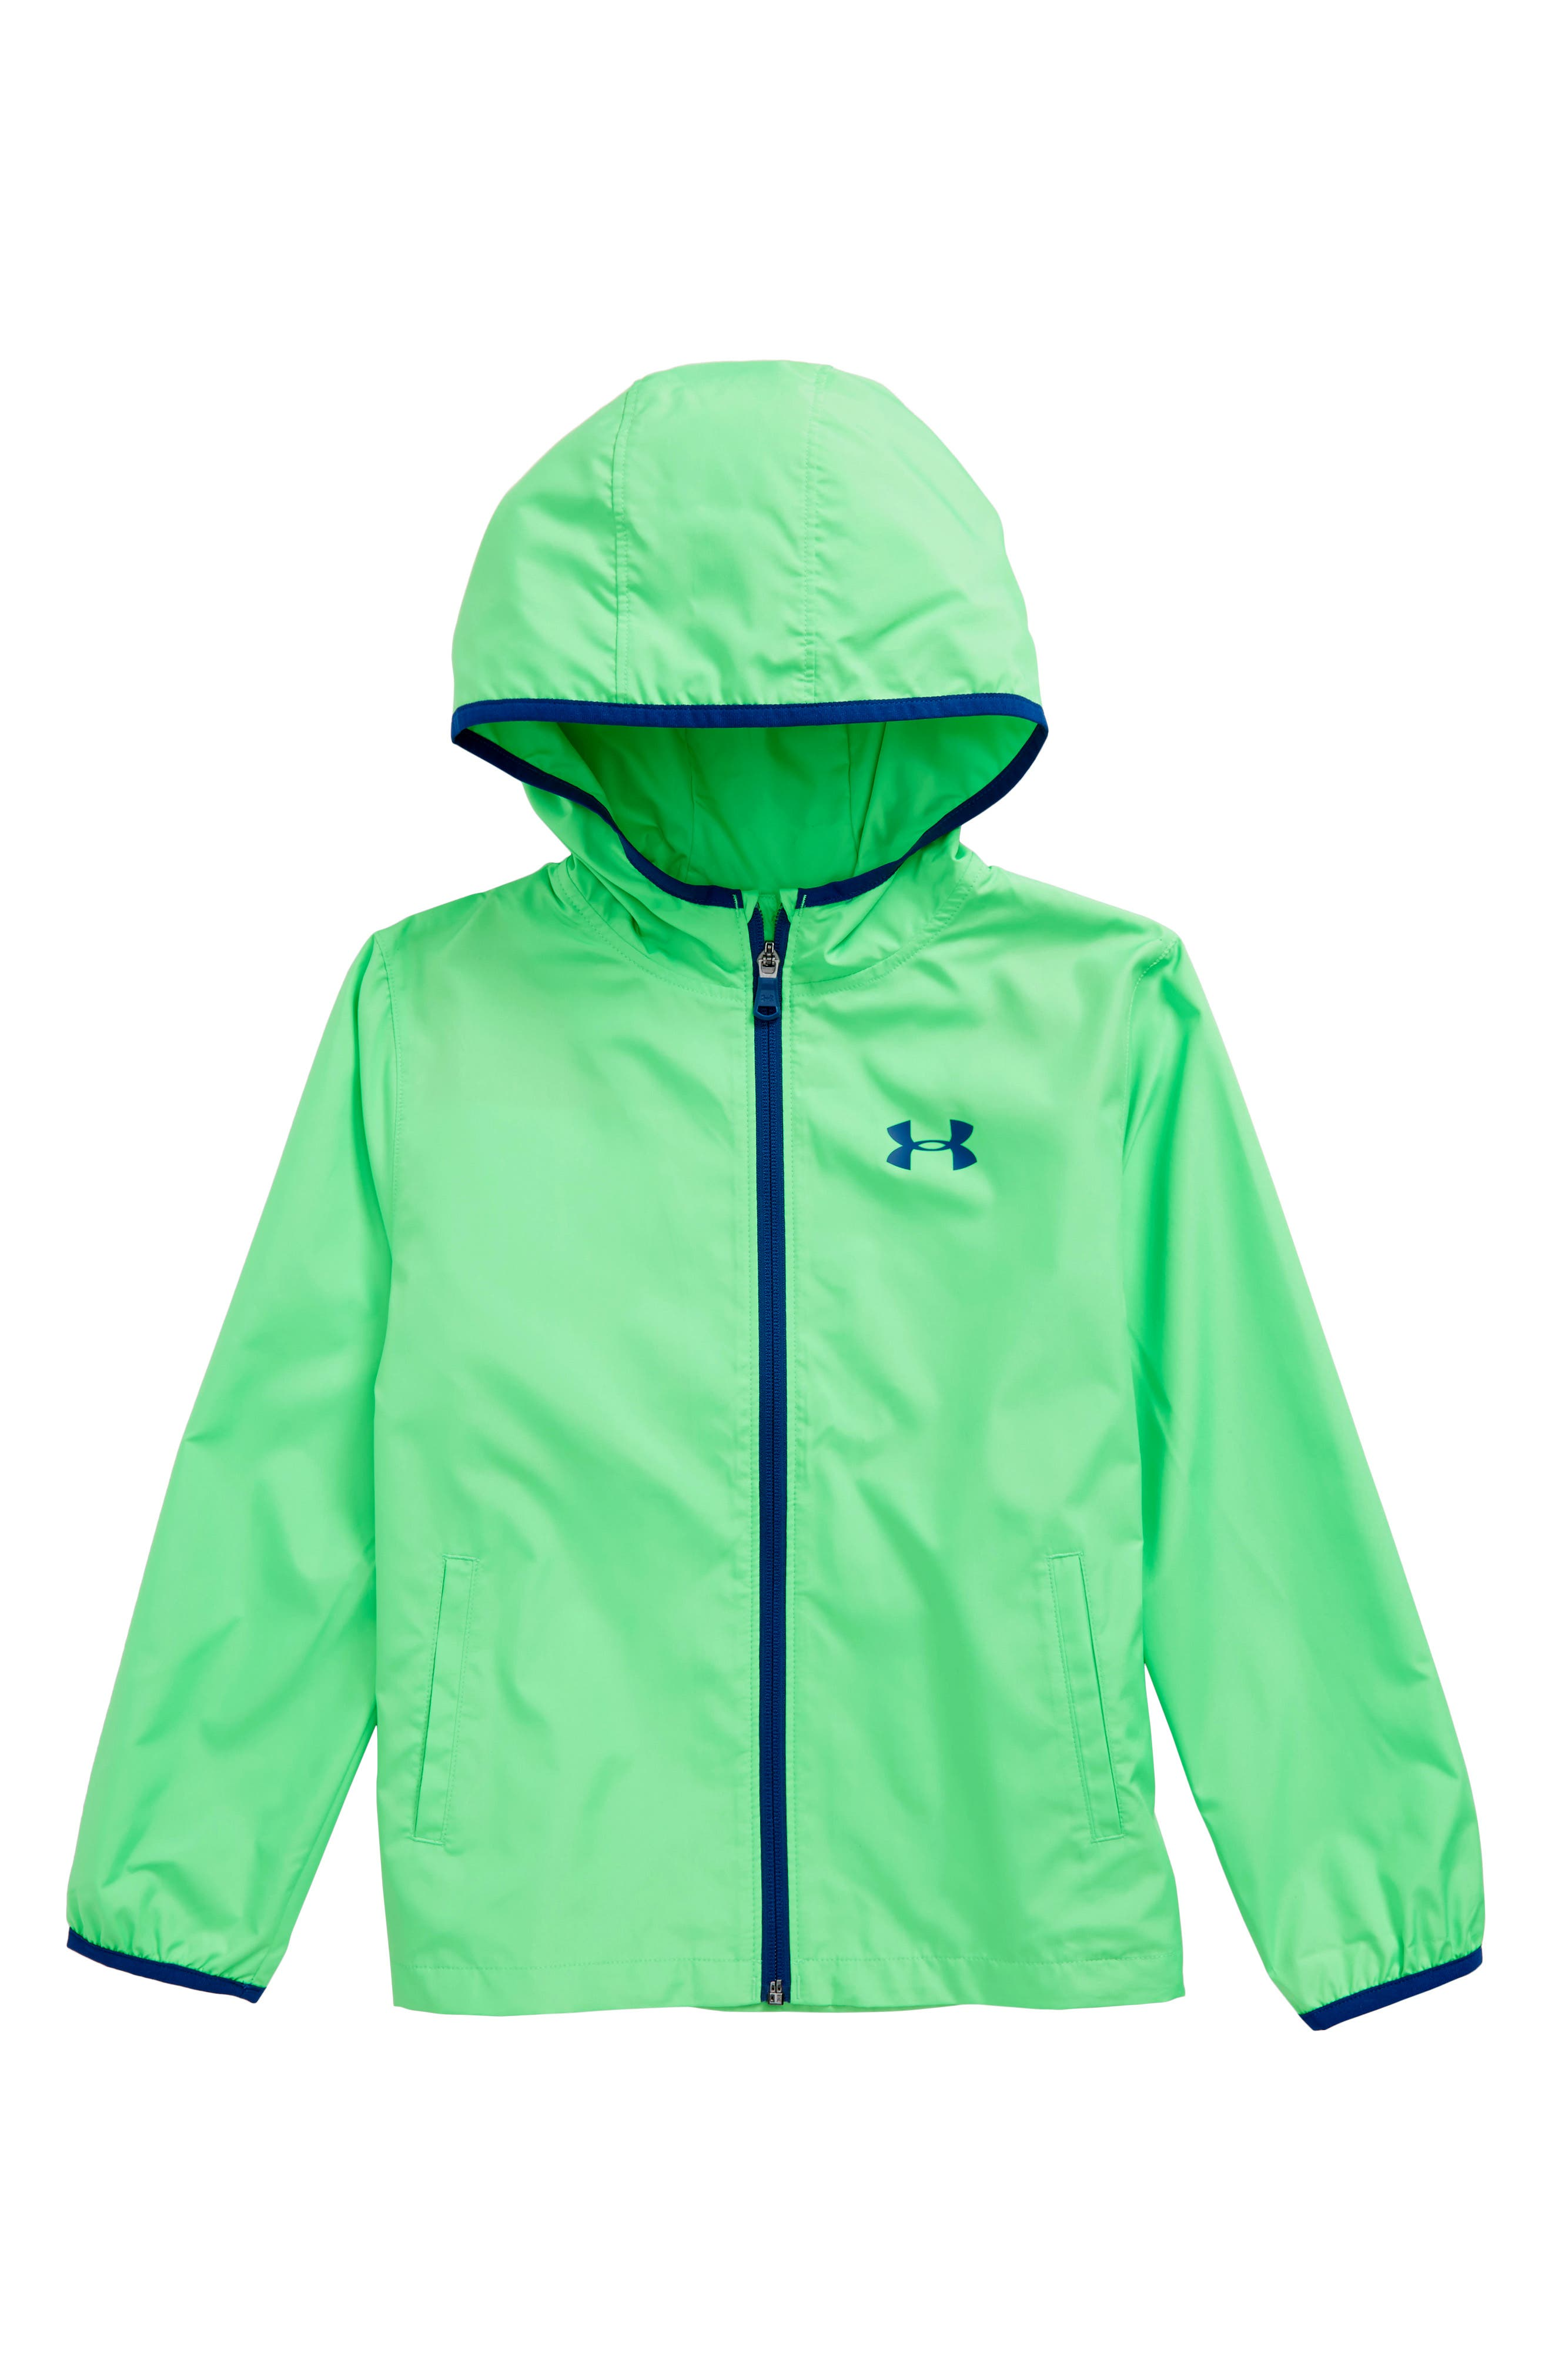 Sackpack Wind & Water Resistant Jacket,                         Main,                         color, Arena Green/ Moroccan Blue